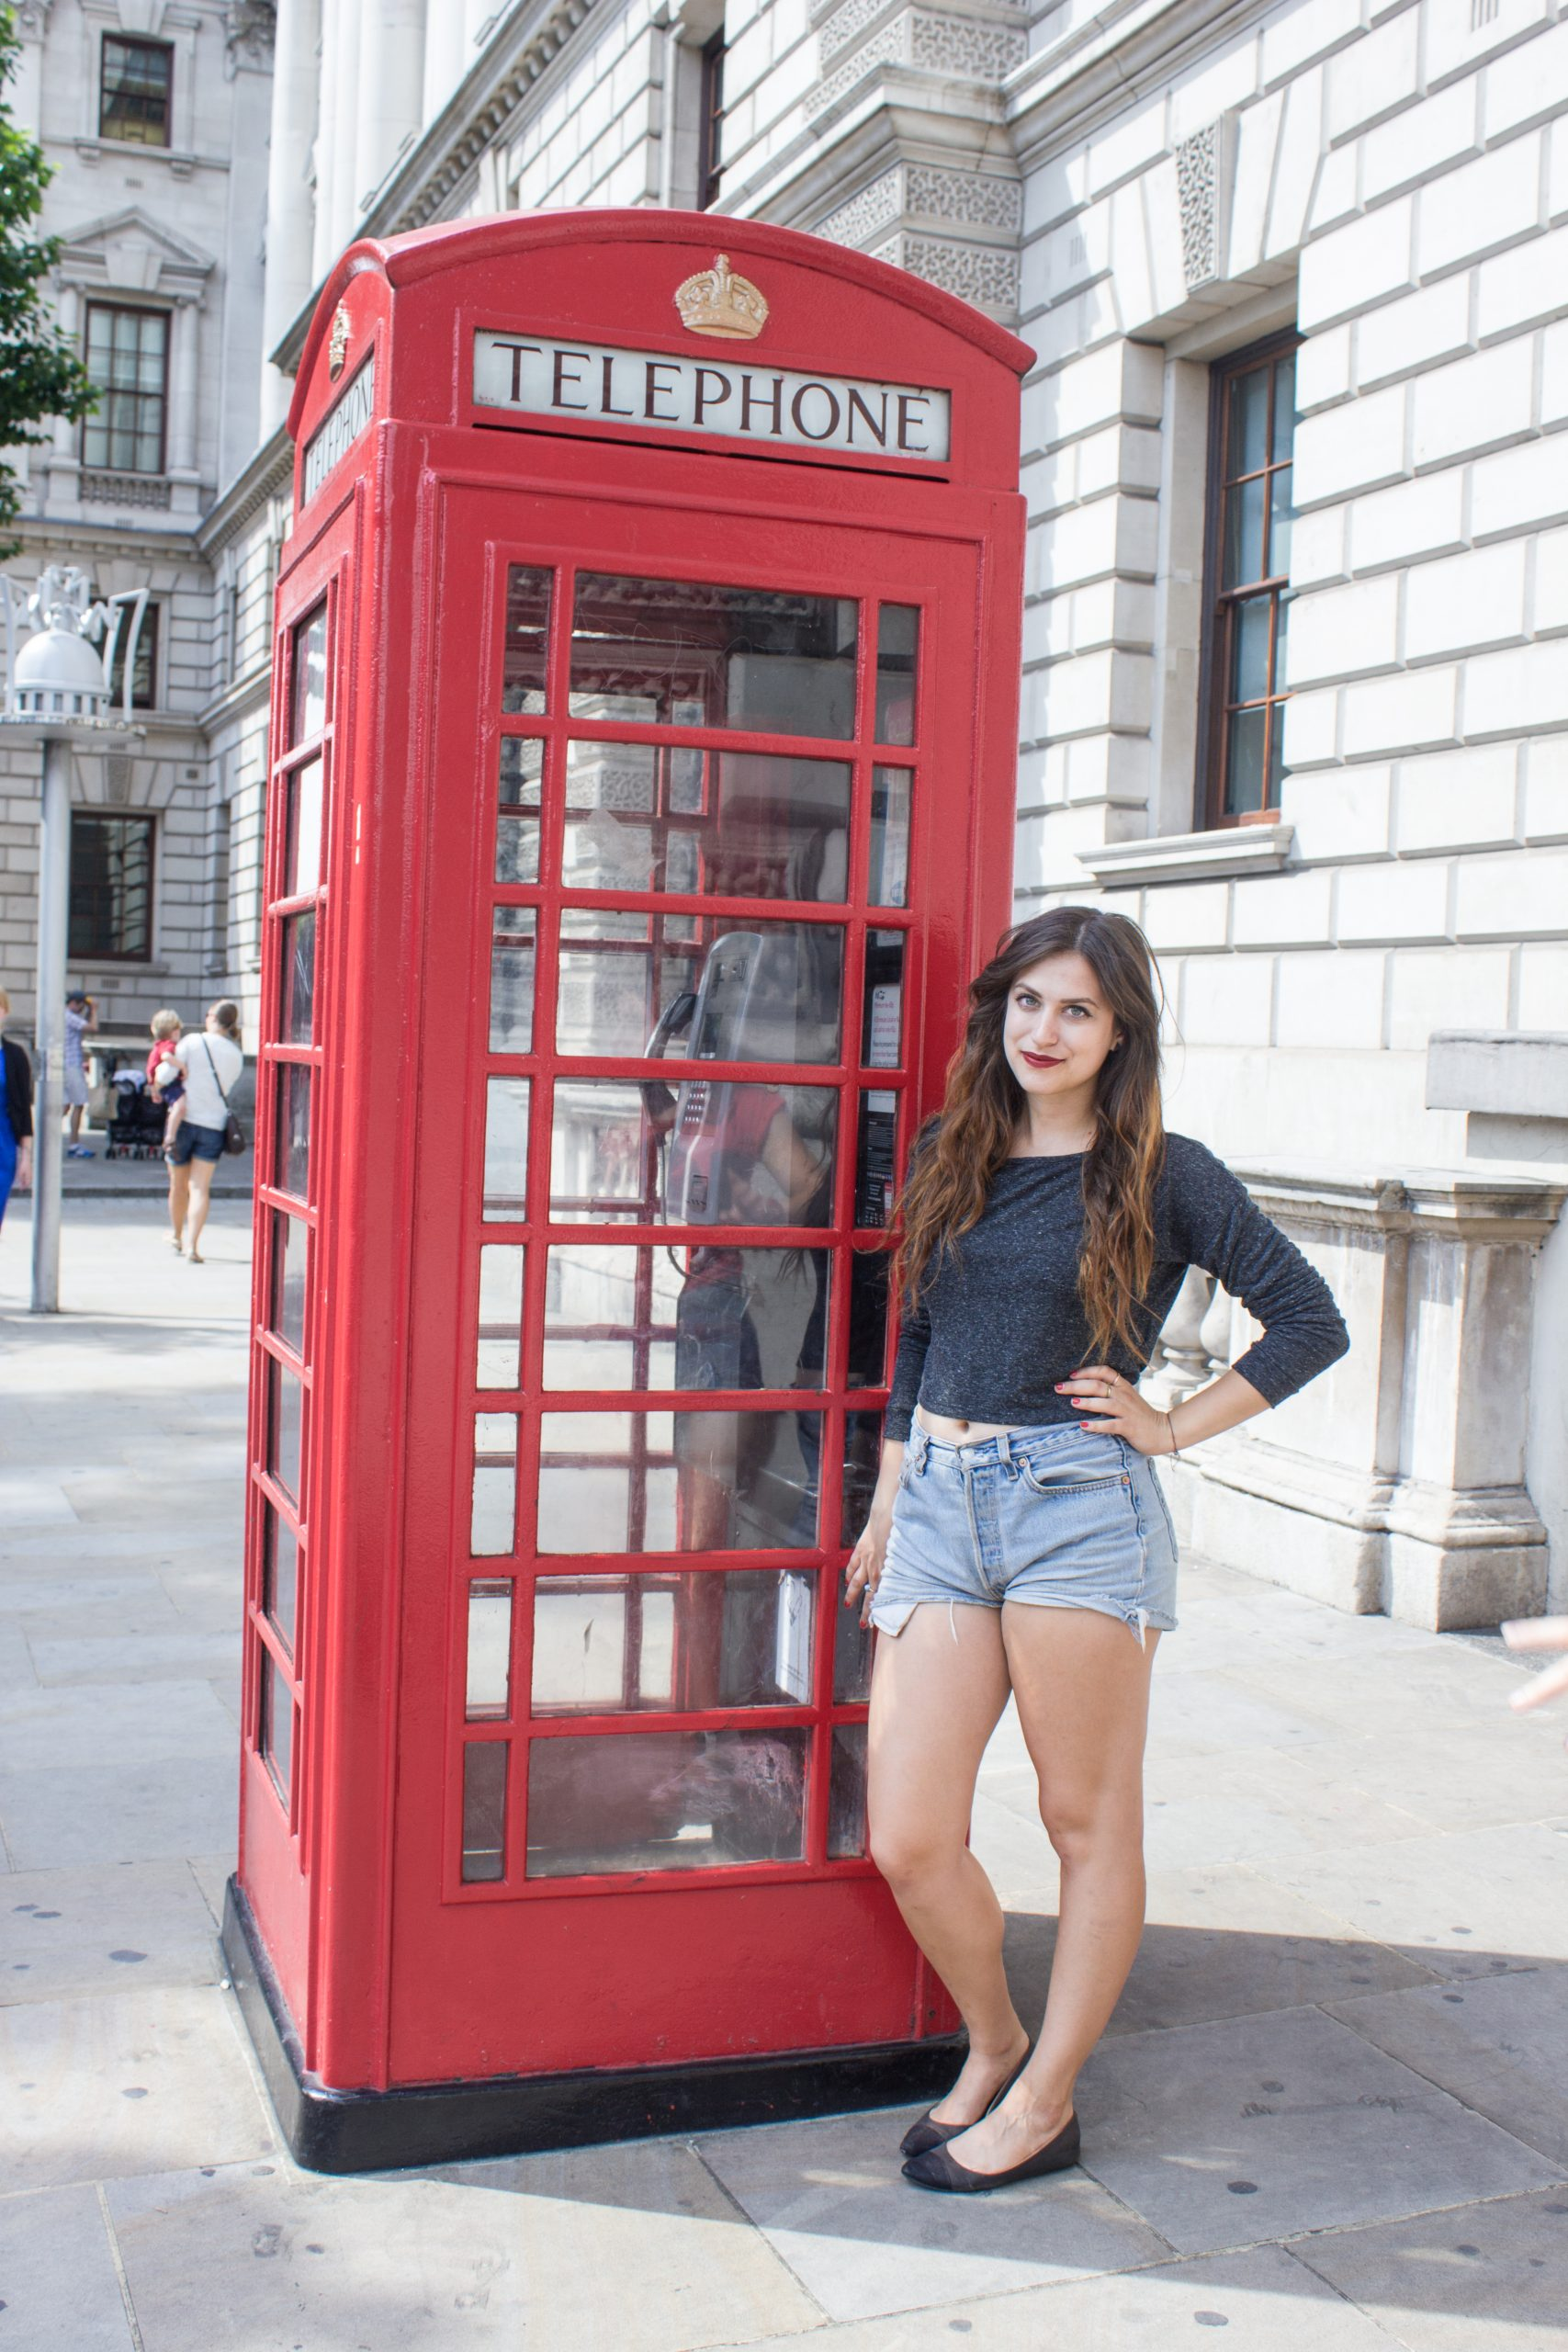 Kelsey standing at a red telephone booth in London